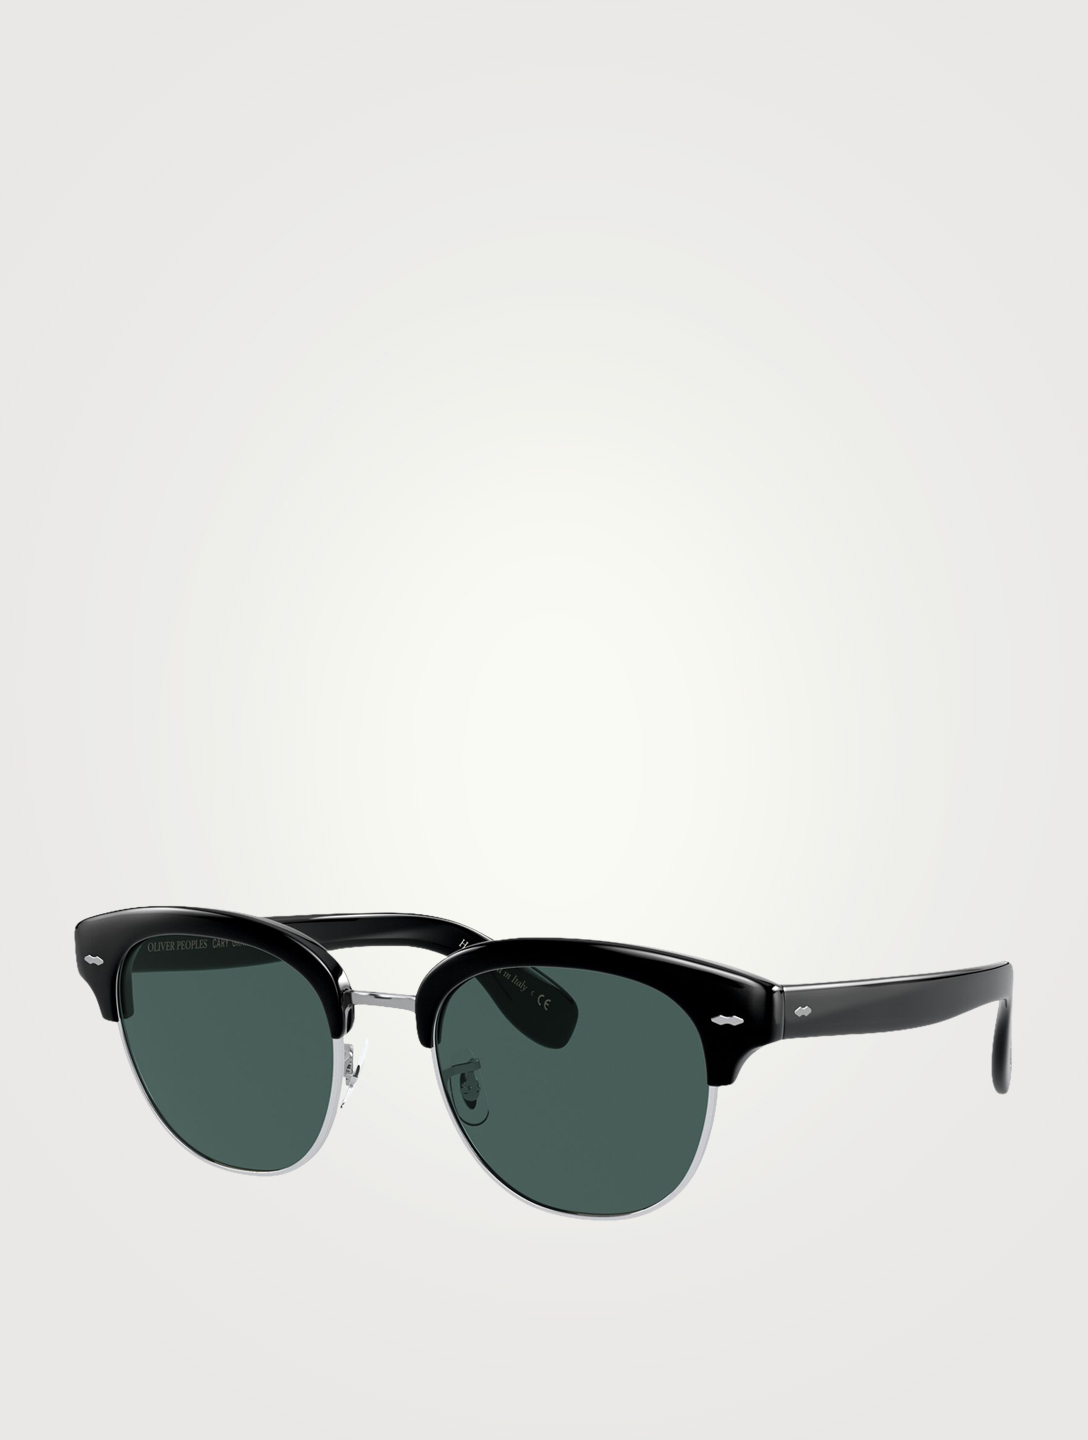 OLIVER PEOPLES Cary Grant 2 Square Sunglasses Men's Black